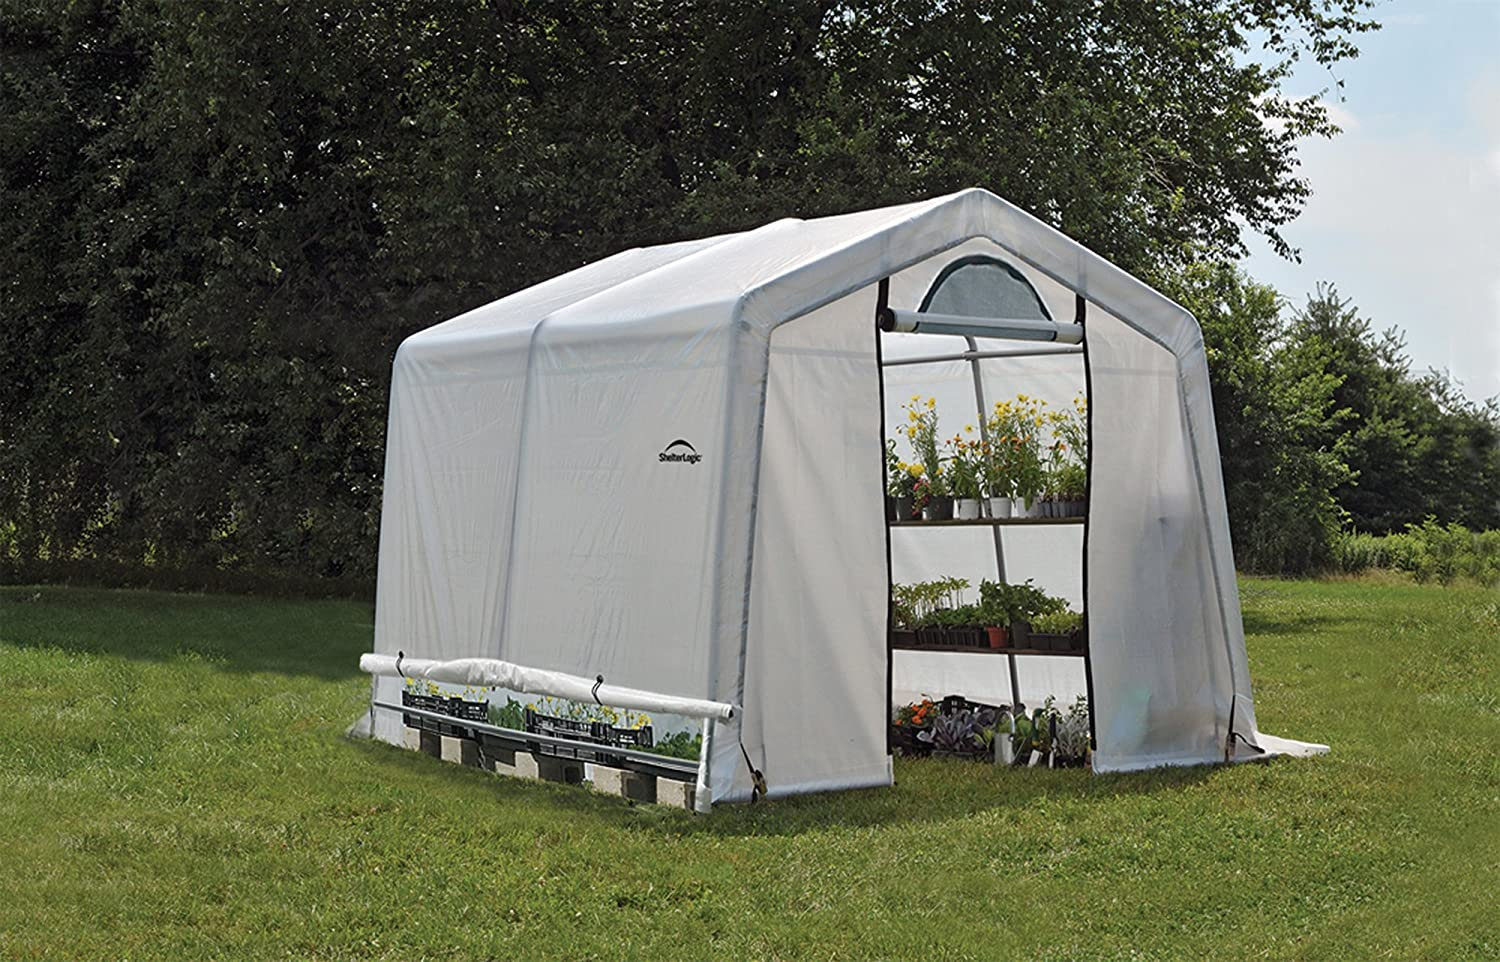 ShelterLogic 6' x 8' x 6.5' GrowIT Greenhouse Review